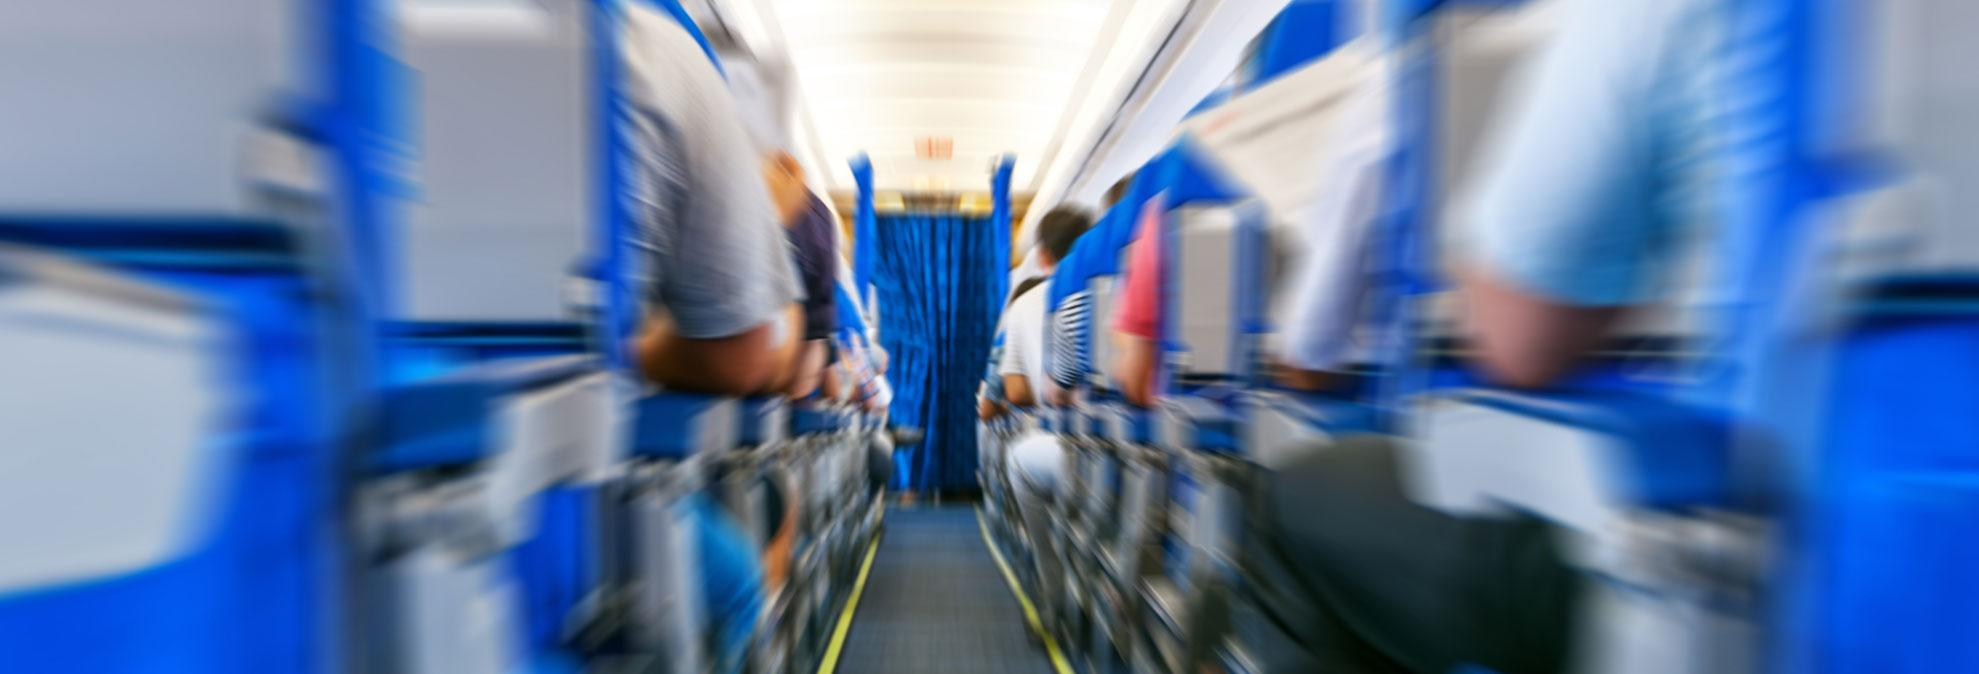 In-Flight Cellphone Calls May Finally Be Ready for Takeoff